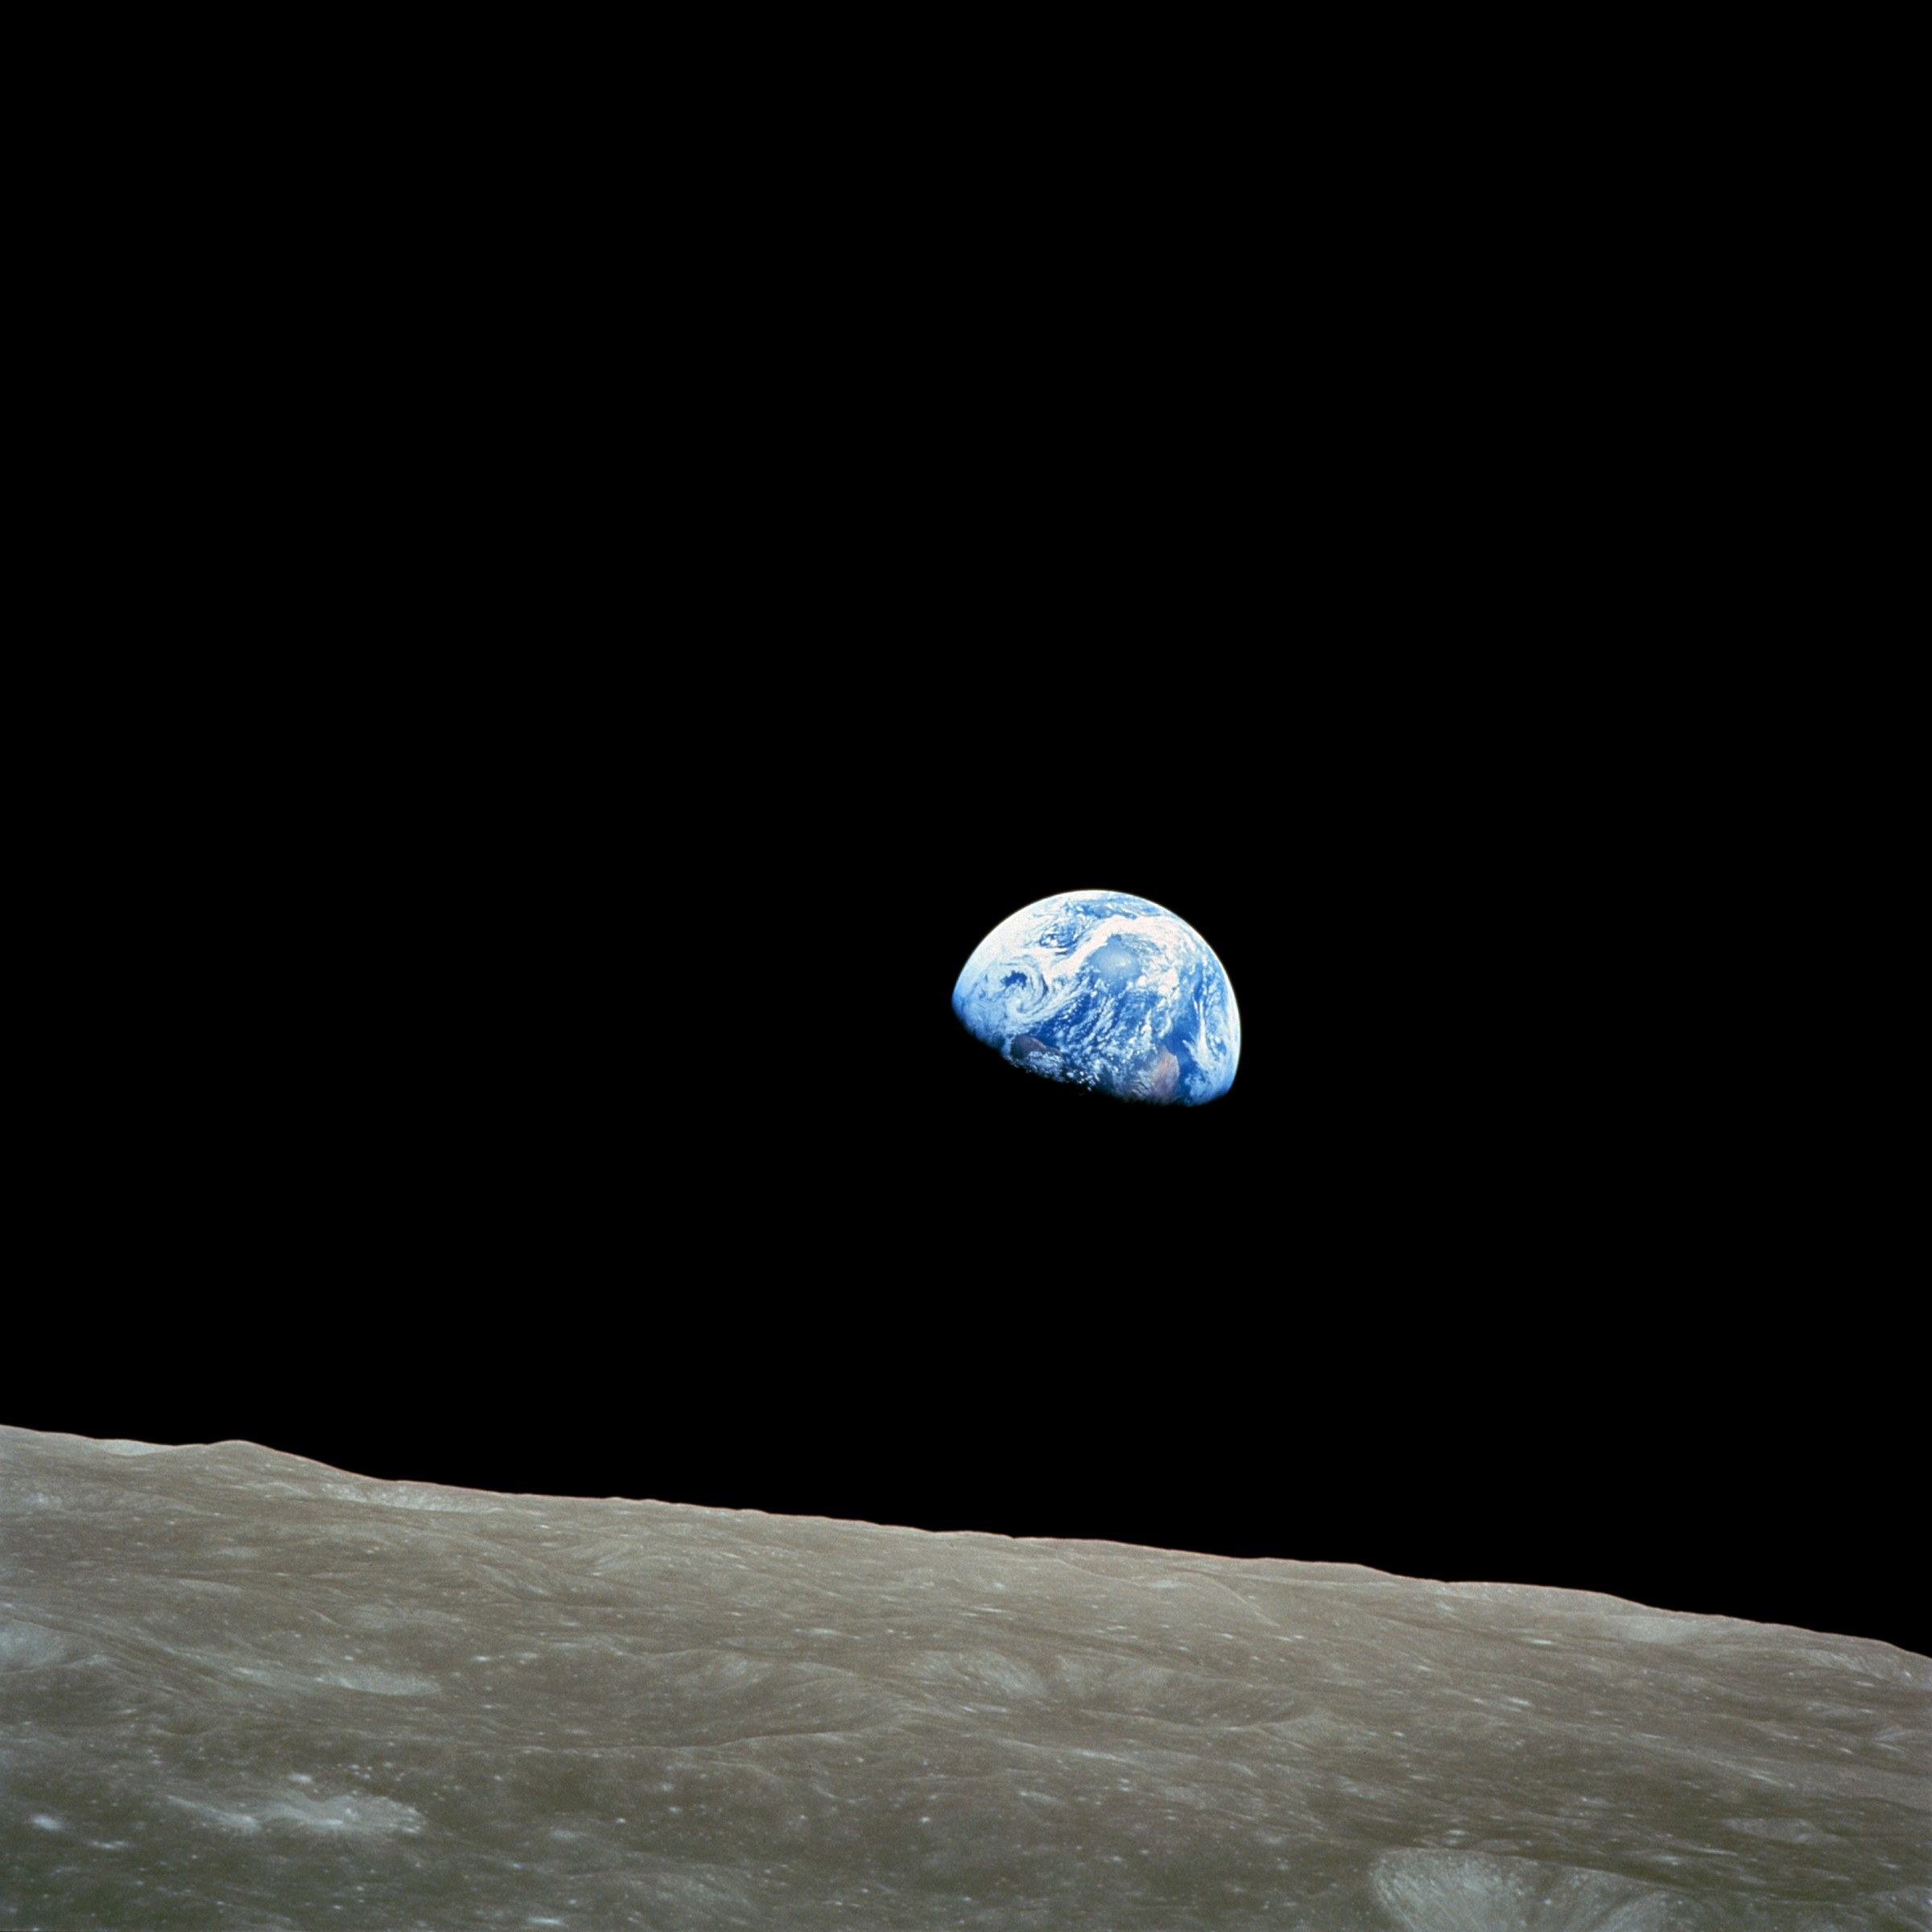 "Today is Earth Day, celebrated annually on April 22. The first Earth Day occurred in 1970, a little more than a year after this photograph - ""Earthrise"" - was captured by Apollo 8 astronaut, Bill Anders. The crew was the first to travel beyond Earth's orbit, yet it was Anders description of the mission that says it all: ""We went to the moon, but we actually discovered Earth."" /// As you might imagine, this day means quite a lot to us at Daily Overview. Our project was created with the purpose to inspire greater appreciation for our planet and greater awareness of what we are doing to it and how urgent it is to protect it. Today is an opportunity to reflect on our shared home, this place we all inhabit, floating in an infinite sea of darkness. How grateful are we to occupy such a remarkable place. Wherever you are and whatever you do, we hope it is a beautiful day.   Image courtesy of NASA"